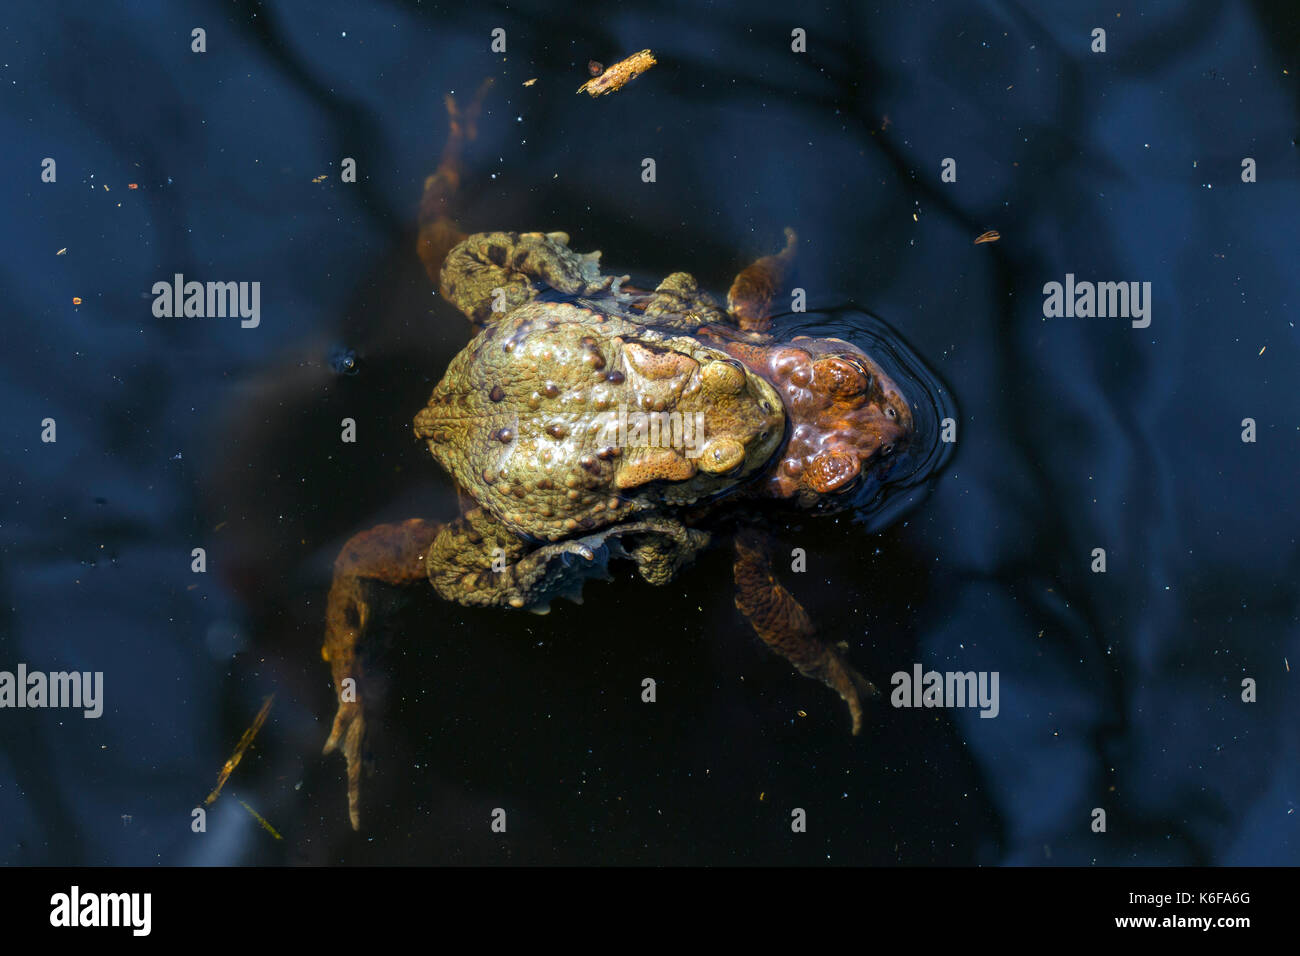 Common toad / European toads (Bufo bufo) pair in amplexus swimming in breeding pond in spring - Stock Image